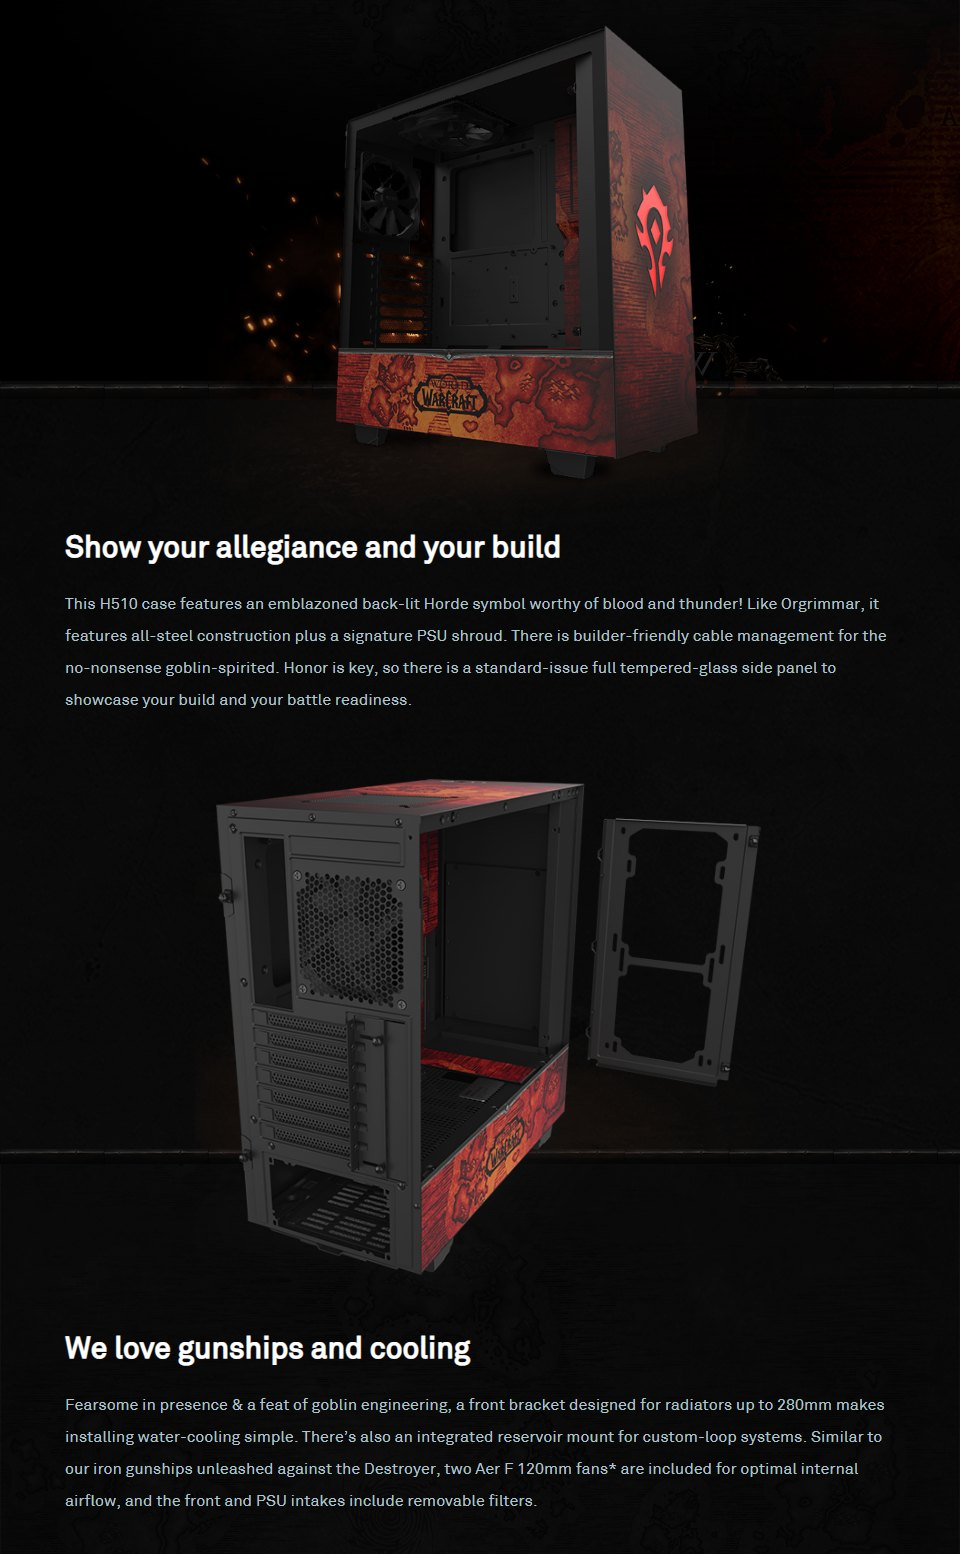 NZXT H510 Mid Tower Case World of Warcraft Horde Limited Edition features